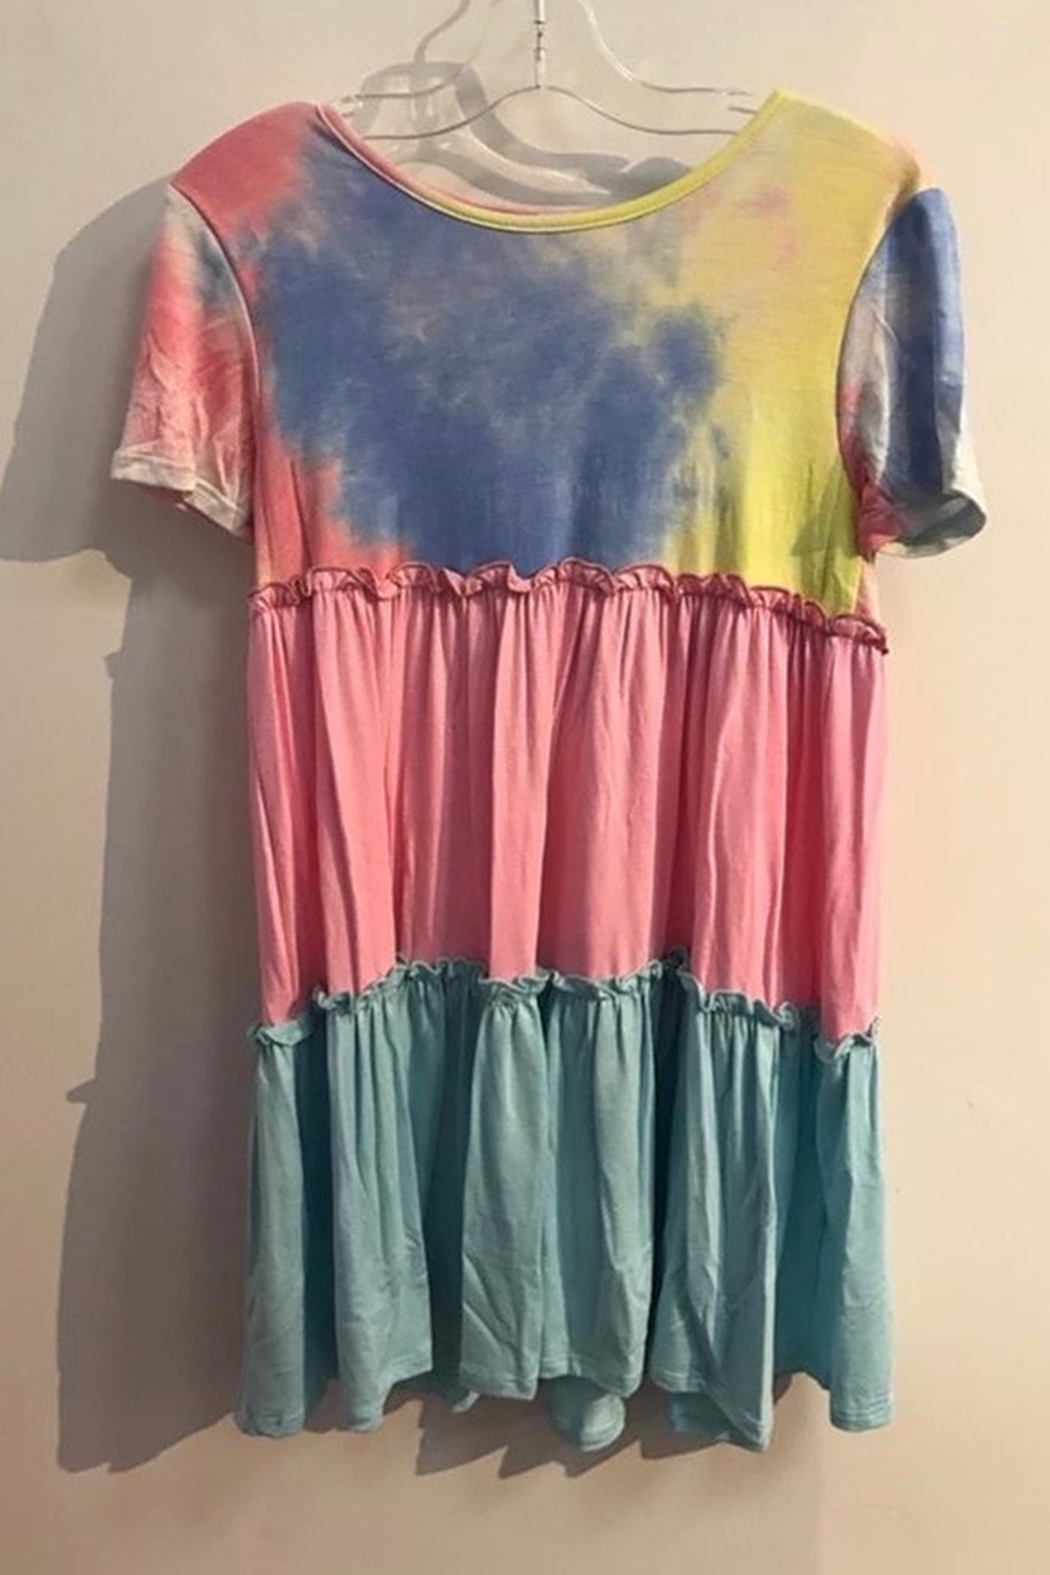 GTOG GIRLS Tie Dye and color block short sleeve dress - Front Cropped Image